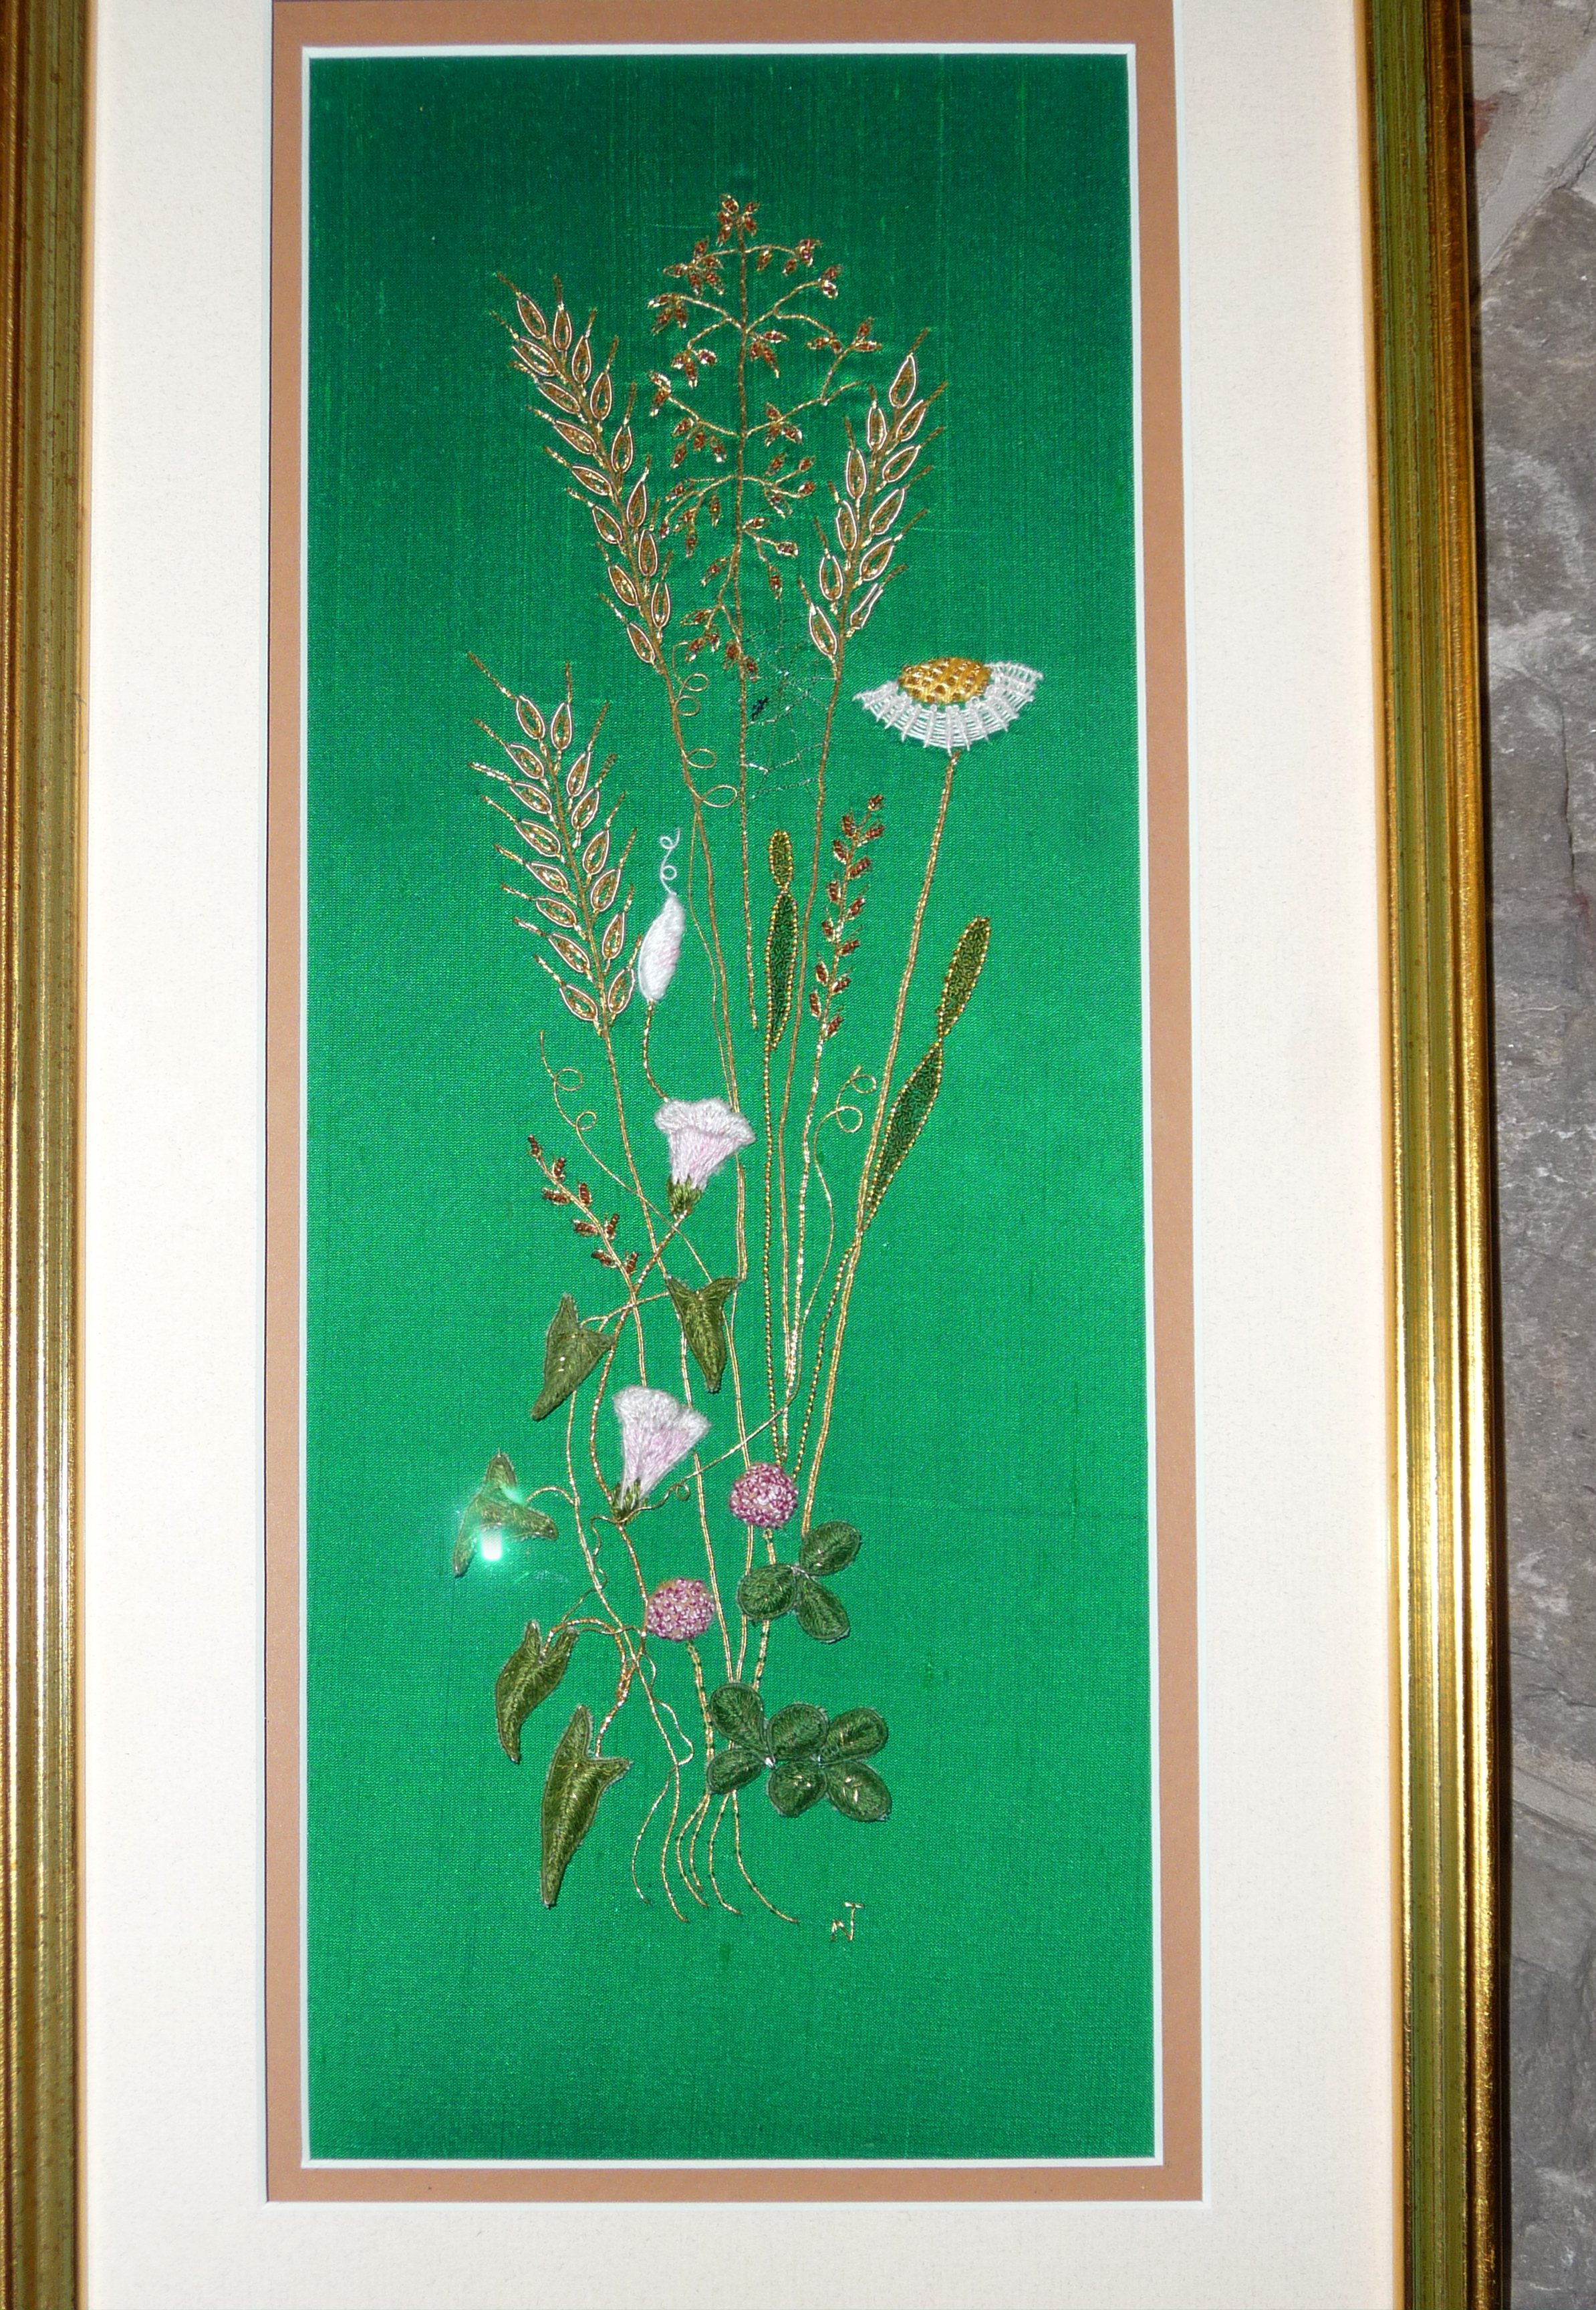 CORNFIELD by Norma Tanswell, goldwork and stumpwork